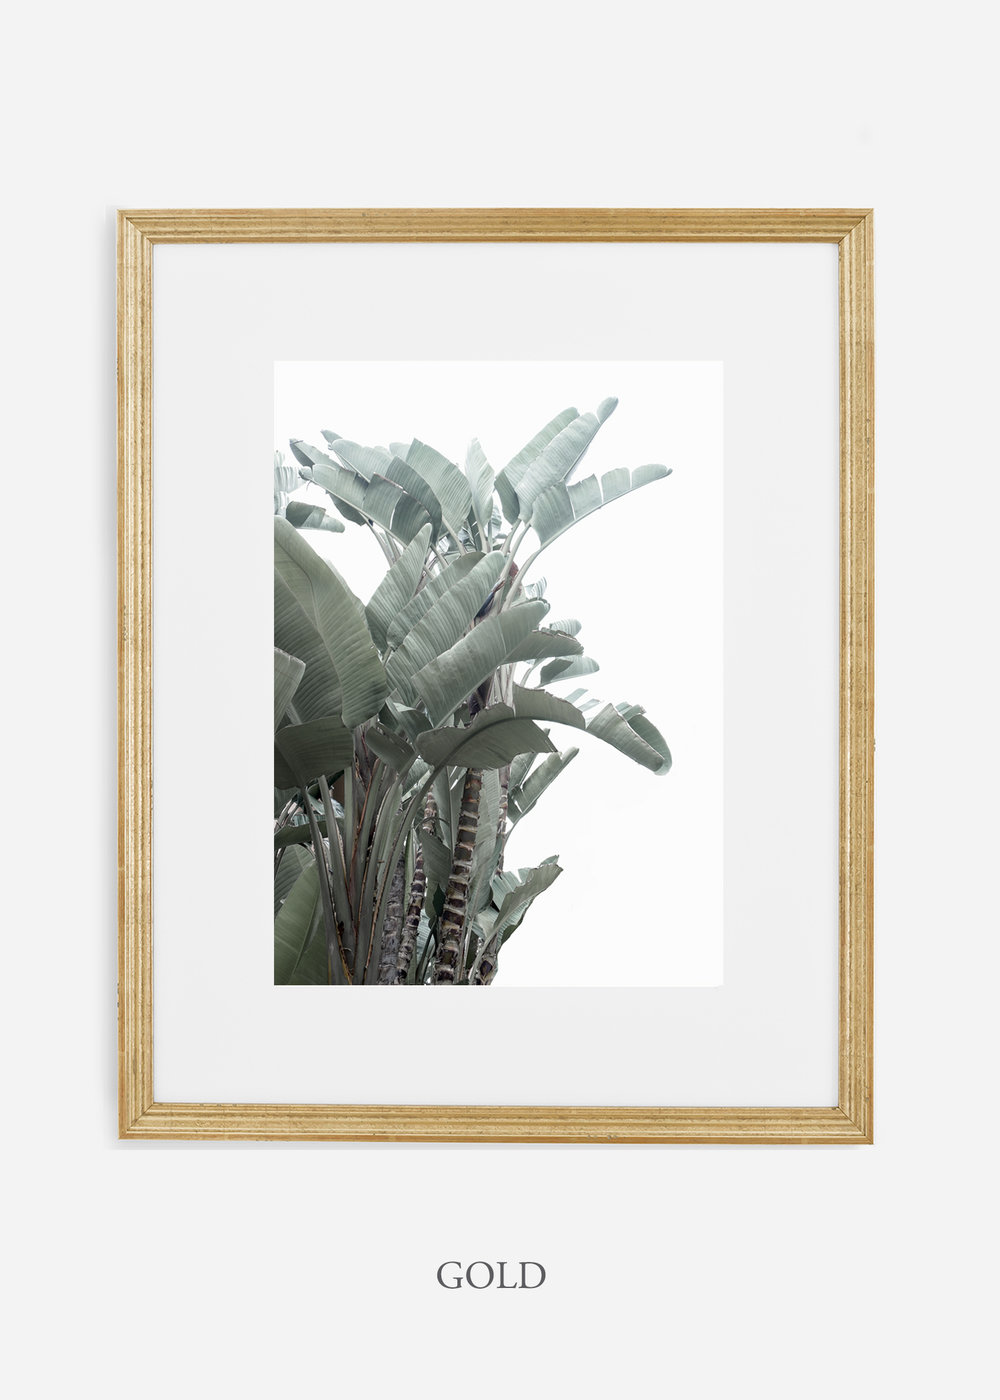 wildercalifornia_goldframe_WinterWhite_BananaLeafNo.1_Tropical_LosAngeles_Art_HomeDecor_interiordesign_design.jpg